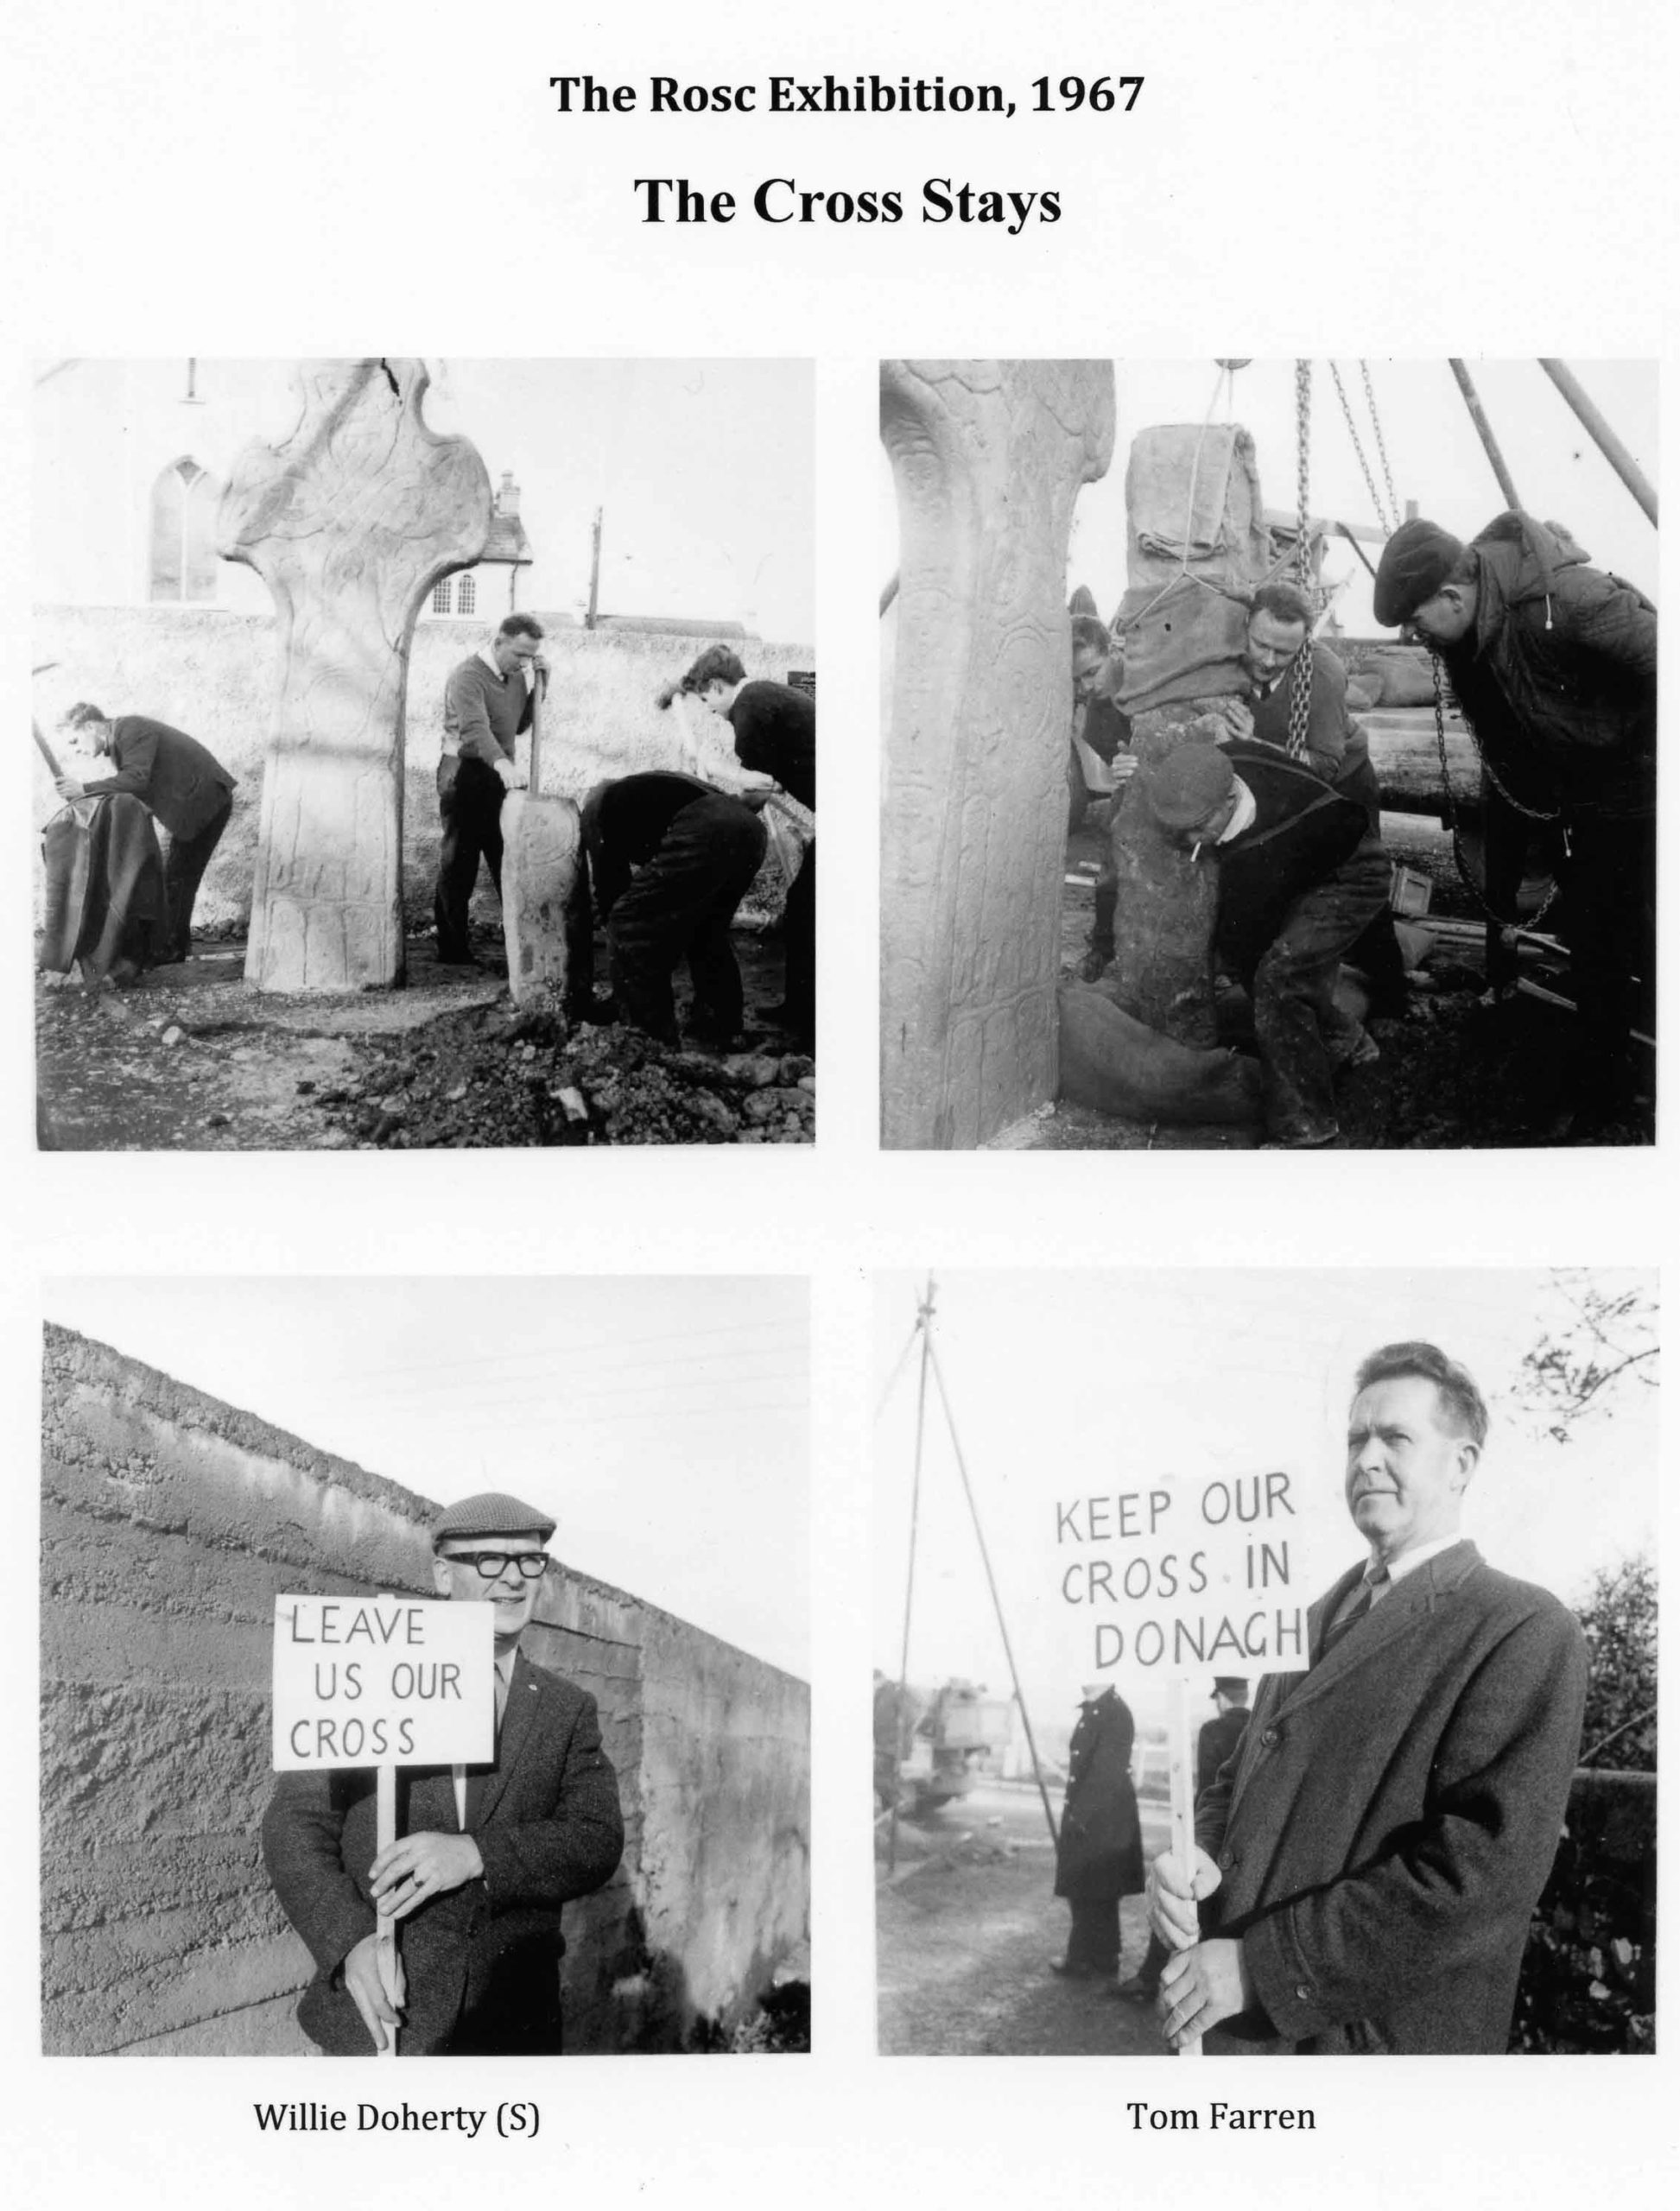 photos of protestors at the Donagh Cross site in 1967